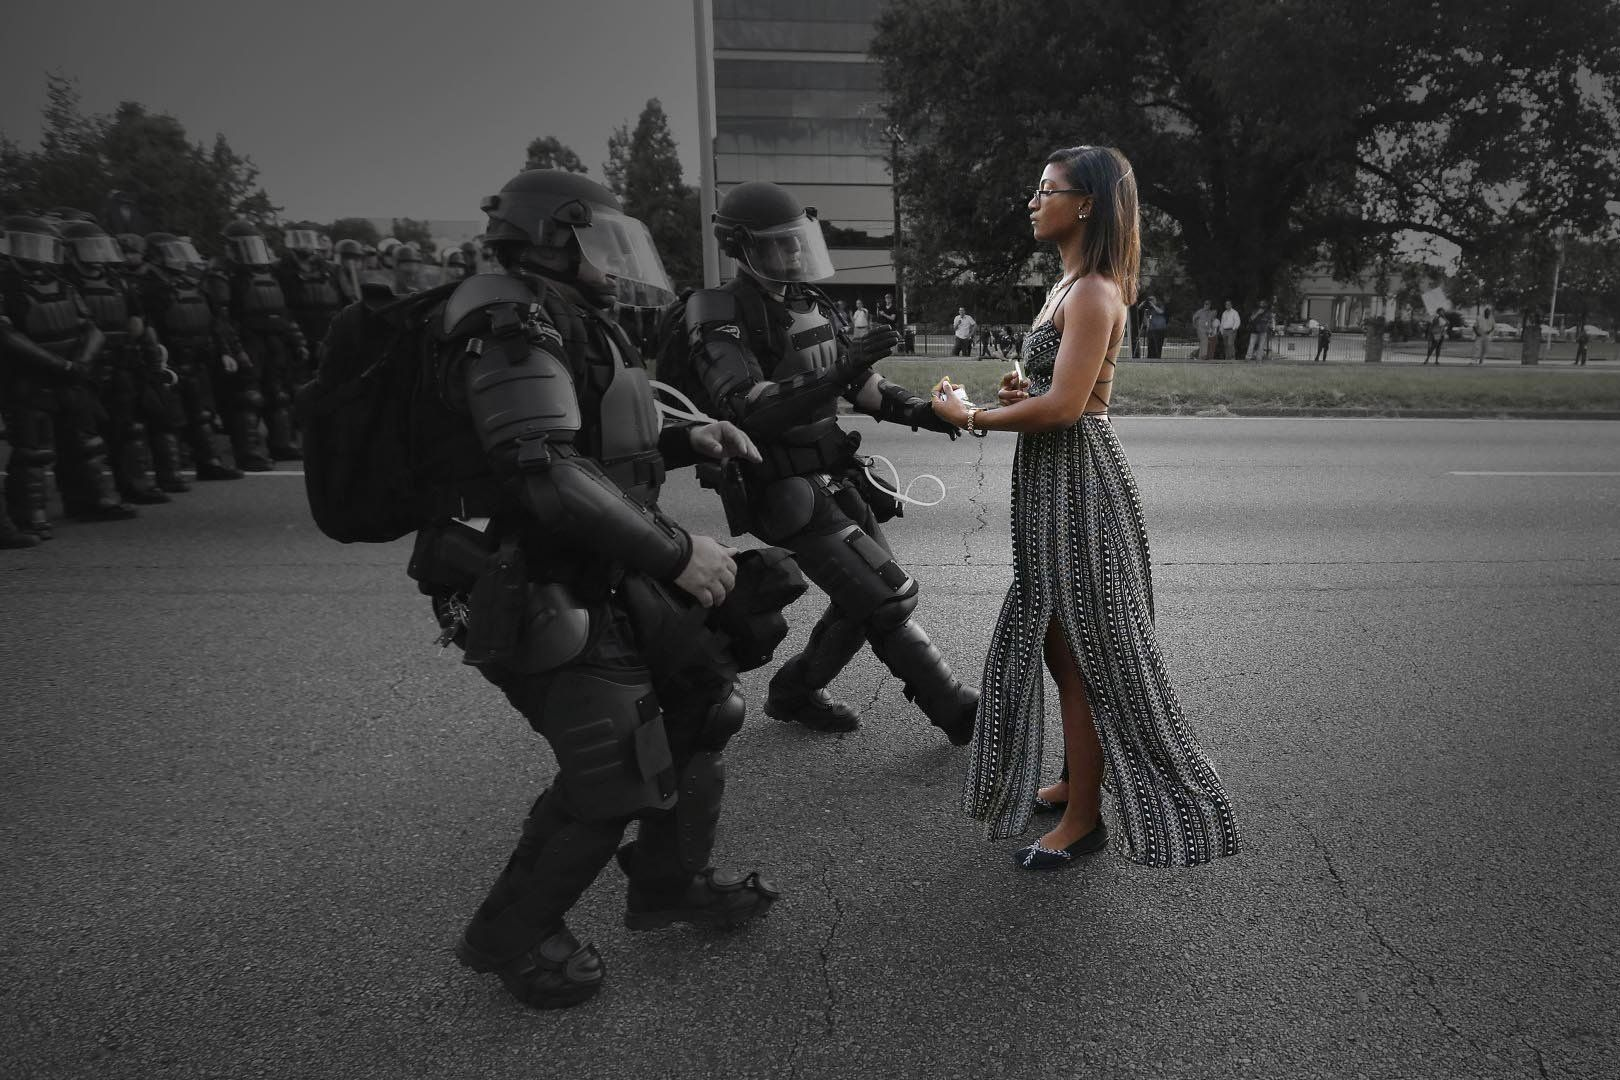 Ieshia Evans is detained by law enforcement as she protests the shooting death of Alton Sterling near the headquarters of the